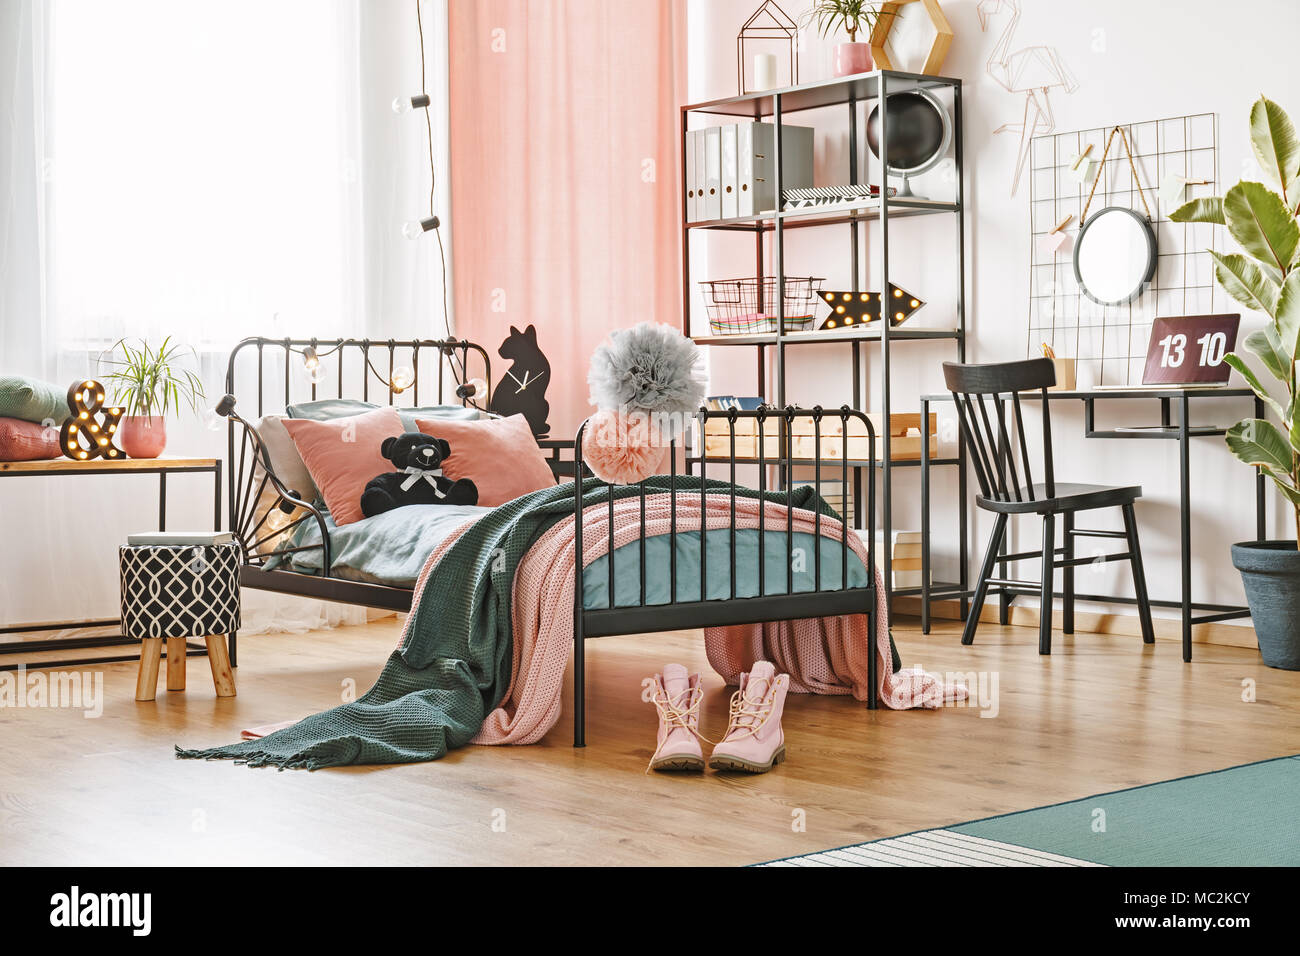 Black Teddy Bear Placed On A Metal Bed With Bedclothes And Blankets Standing In Bright Room Interior With Pink Accents Stock Photo Alamy